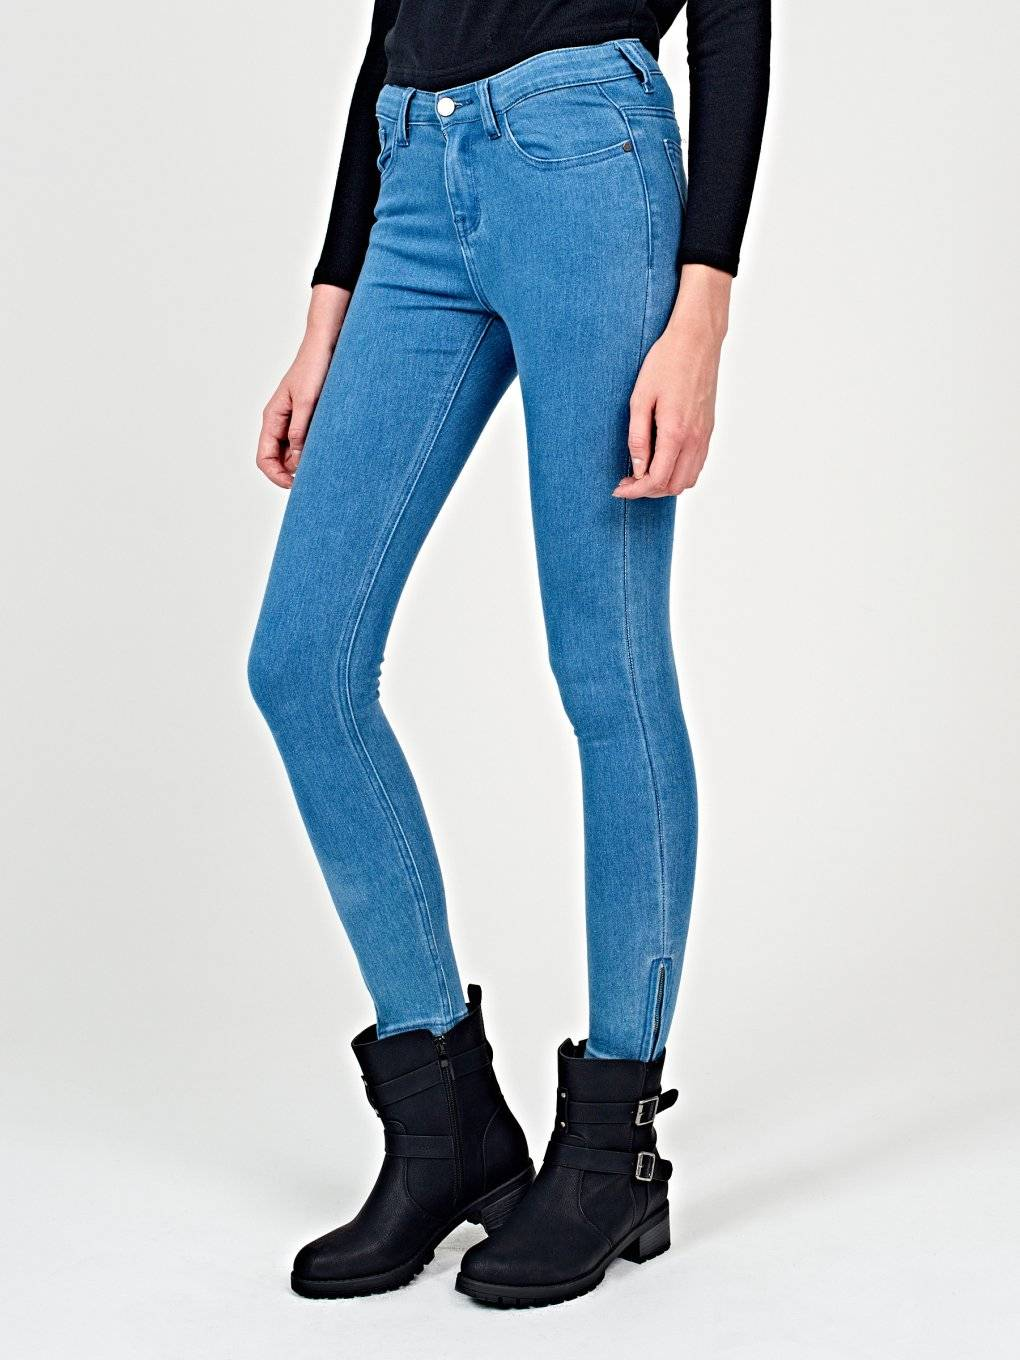 Skinny jeans with zippers